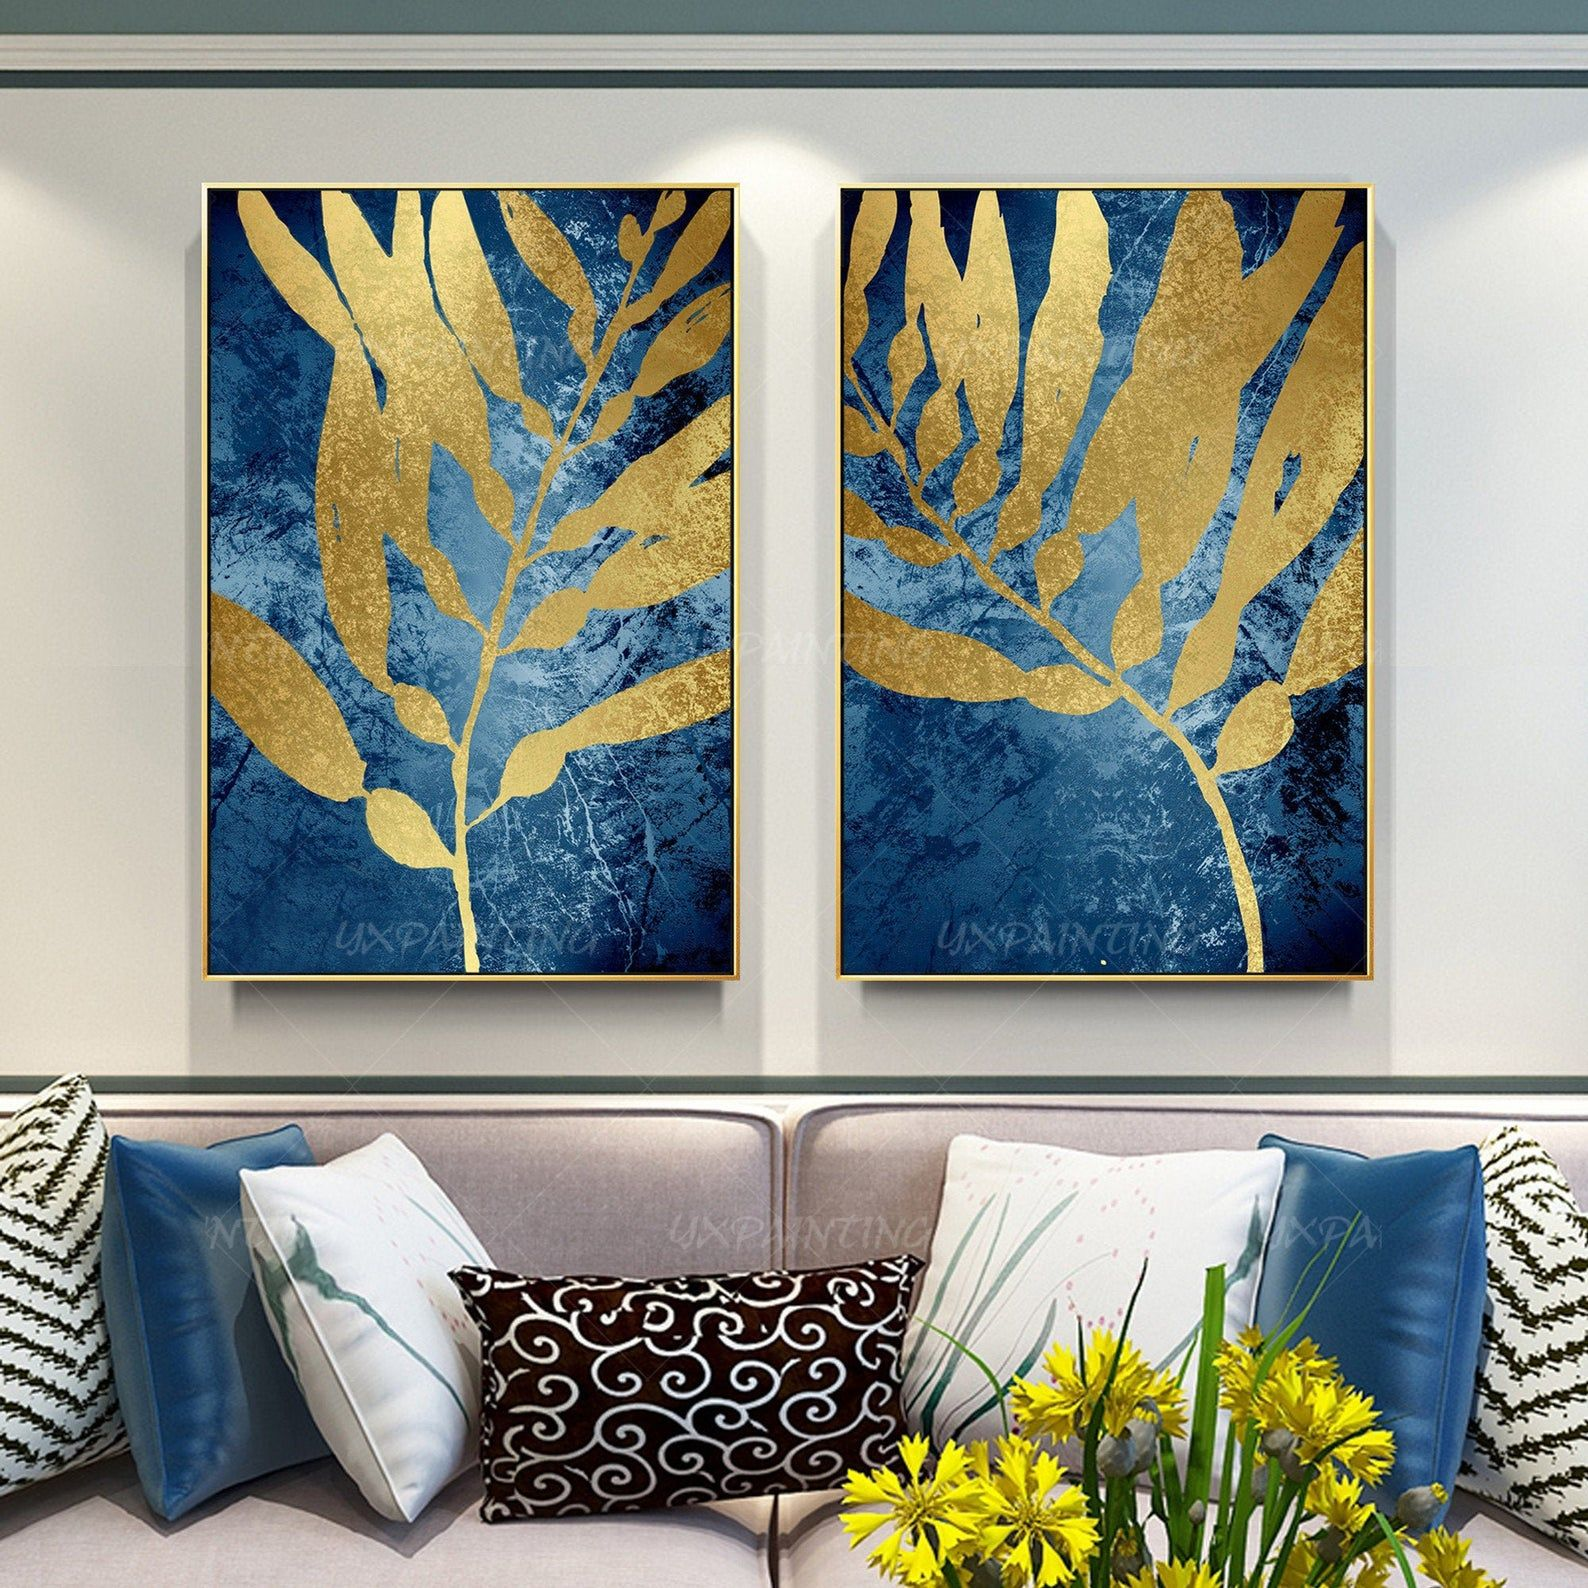 Gold Leaf Set Of 2 Wall Art Navy Blue Abstract Wall Art Etsy In 2020 Abstract Wall Art Blue Abstract Wall Art Etsy Wall Art